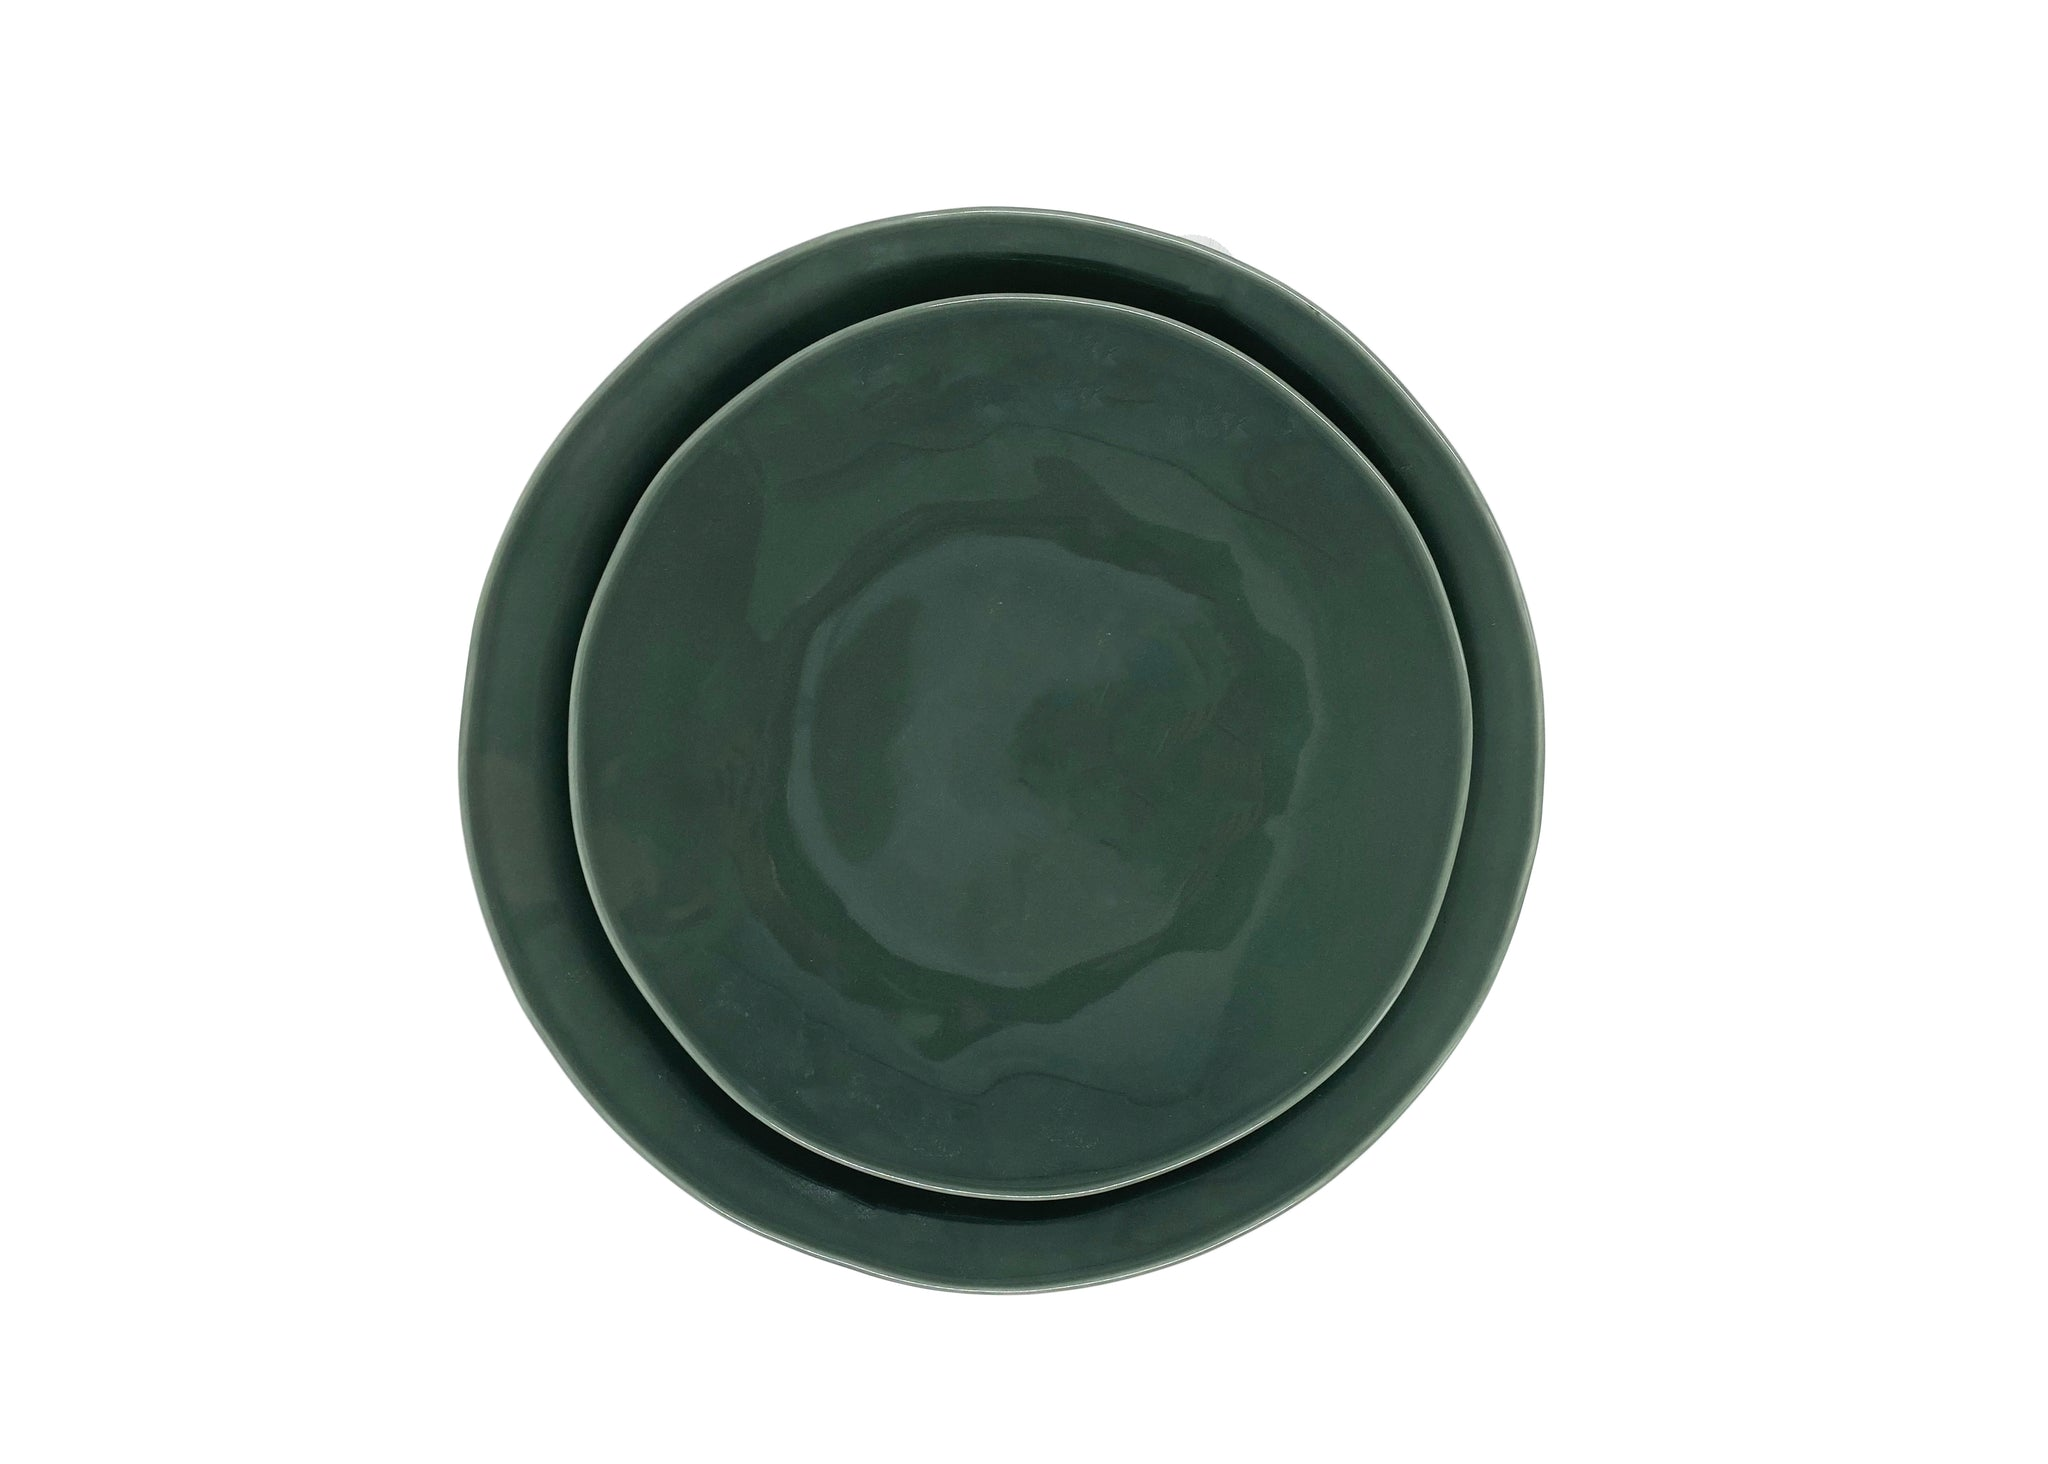 Evora Salad Plate in Ash - Set of 4